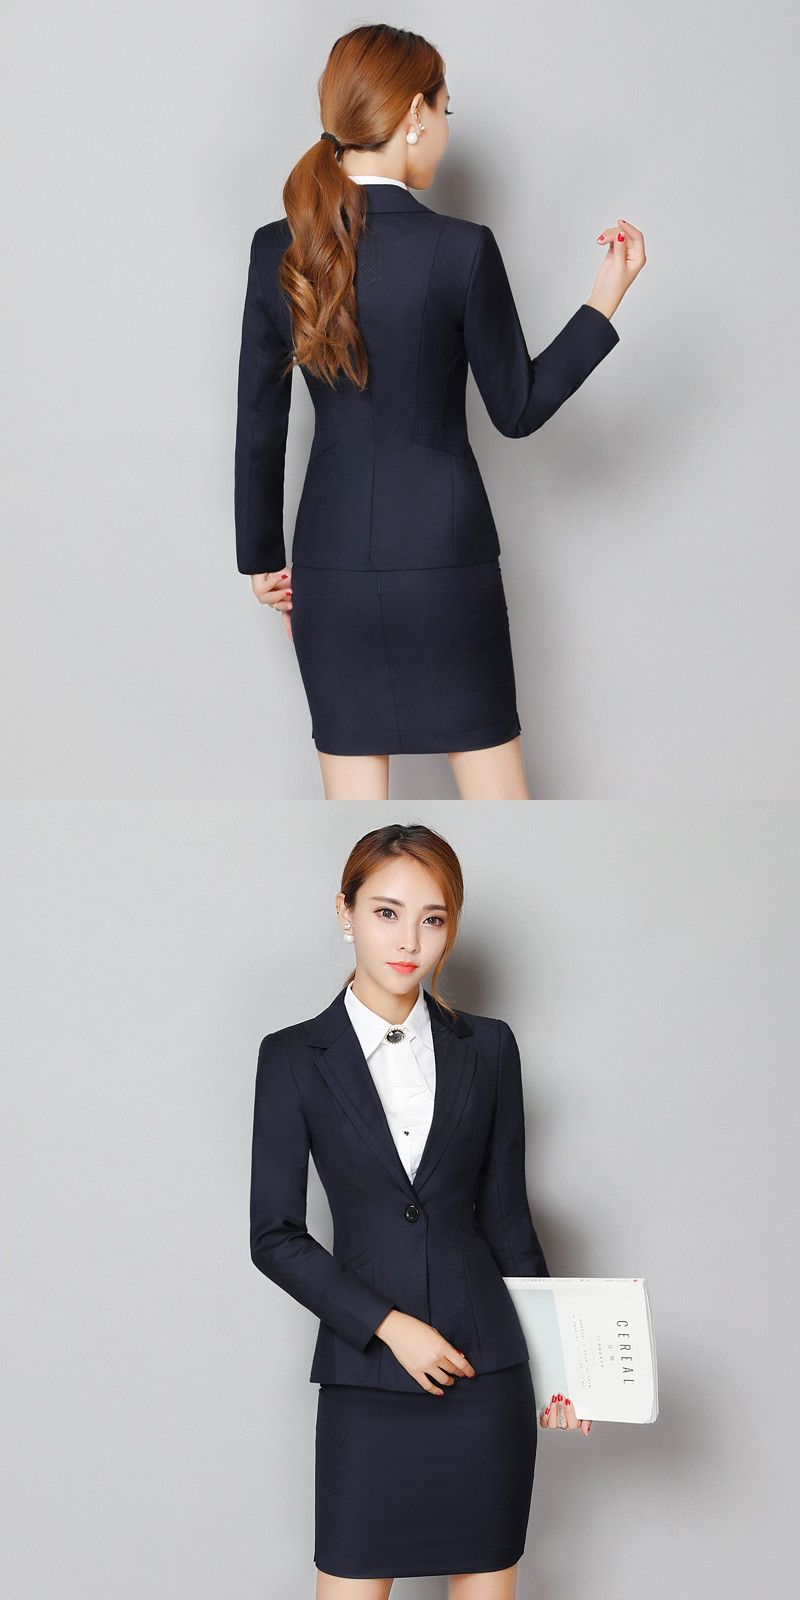 3afd8b28dcd AidenRoy New Style 2018 Formal Blazer Women Skirt Suits Work Wear Sets  Ladies Business Suits Office